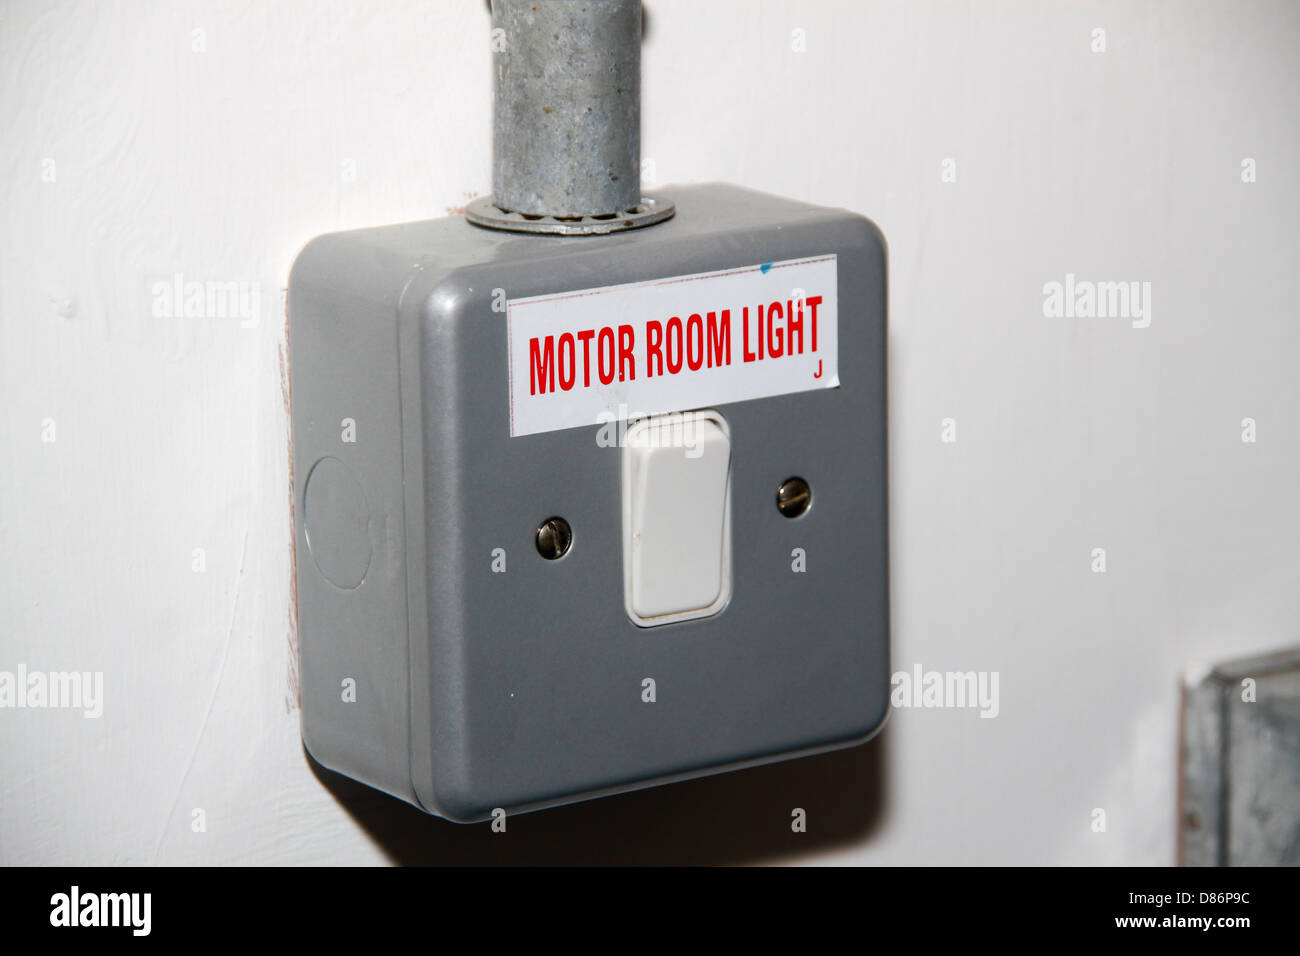 Light Switch In Stock Photos & Light Switch In Stock Images - Alamy